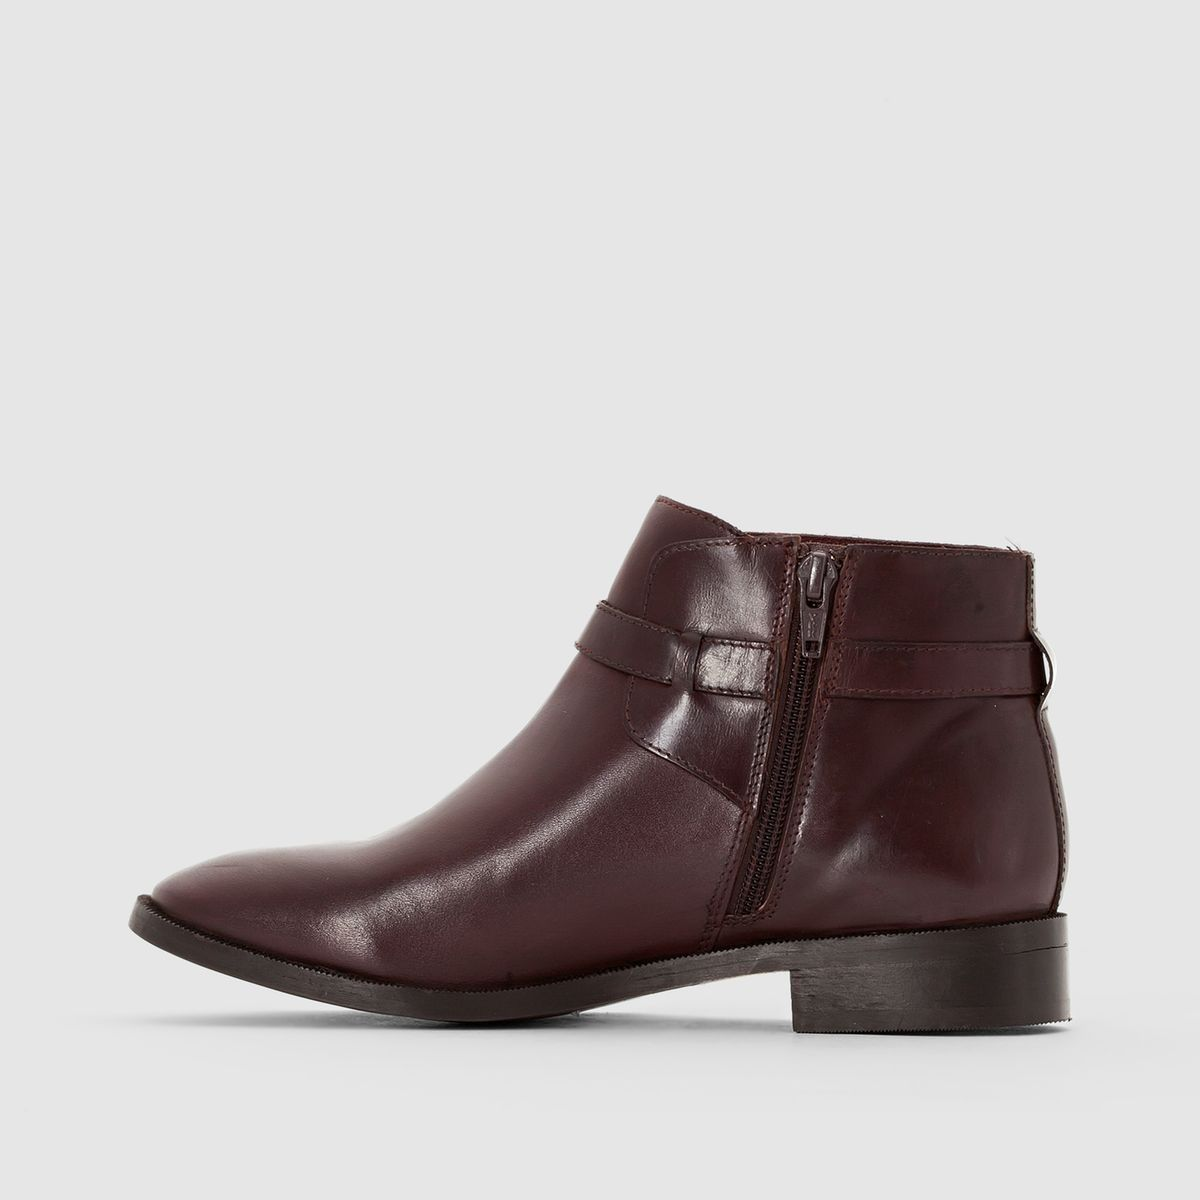 Marron Bottines Boots Mahagony Et Tamaris Lycoris Suuaos